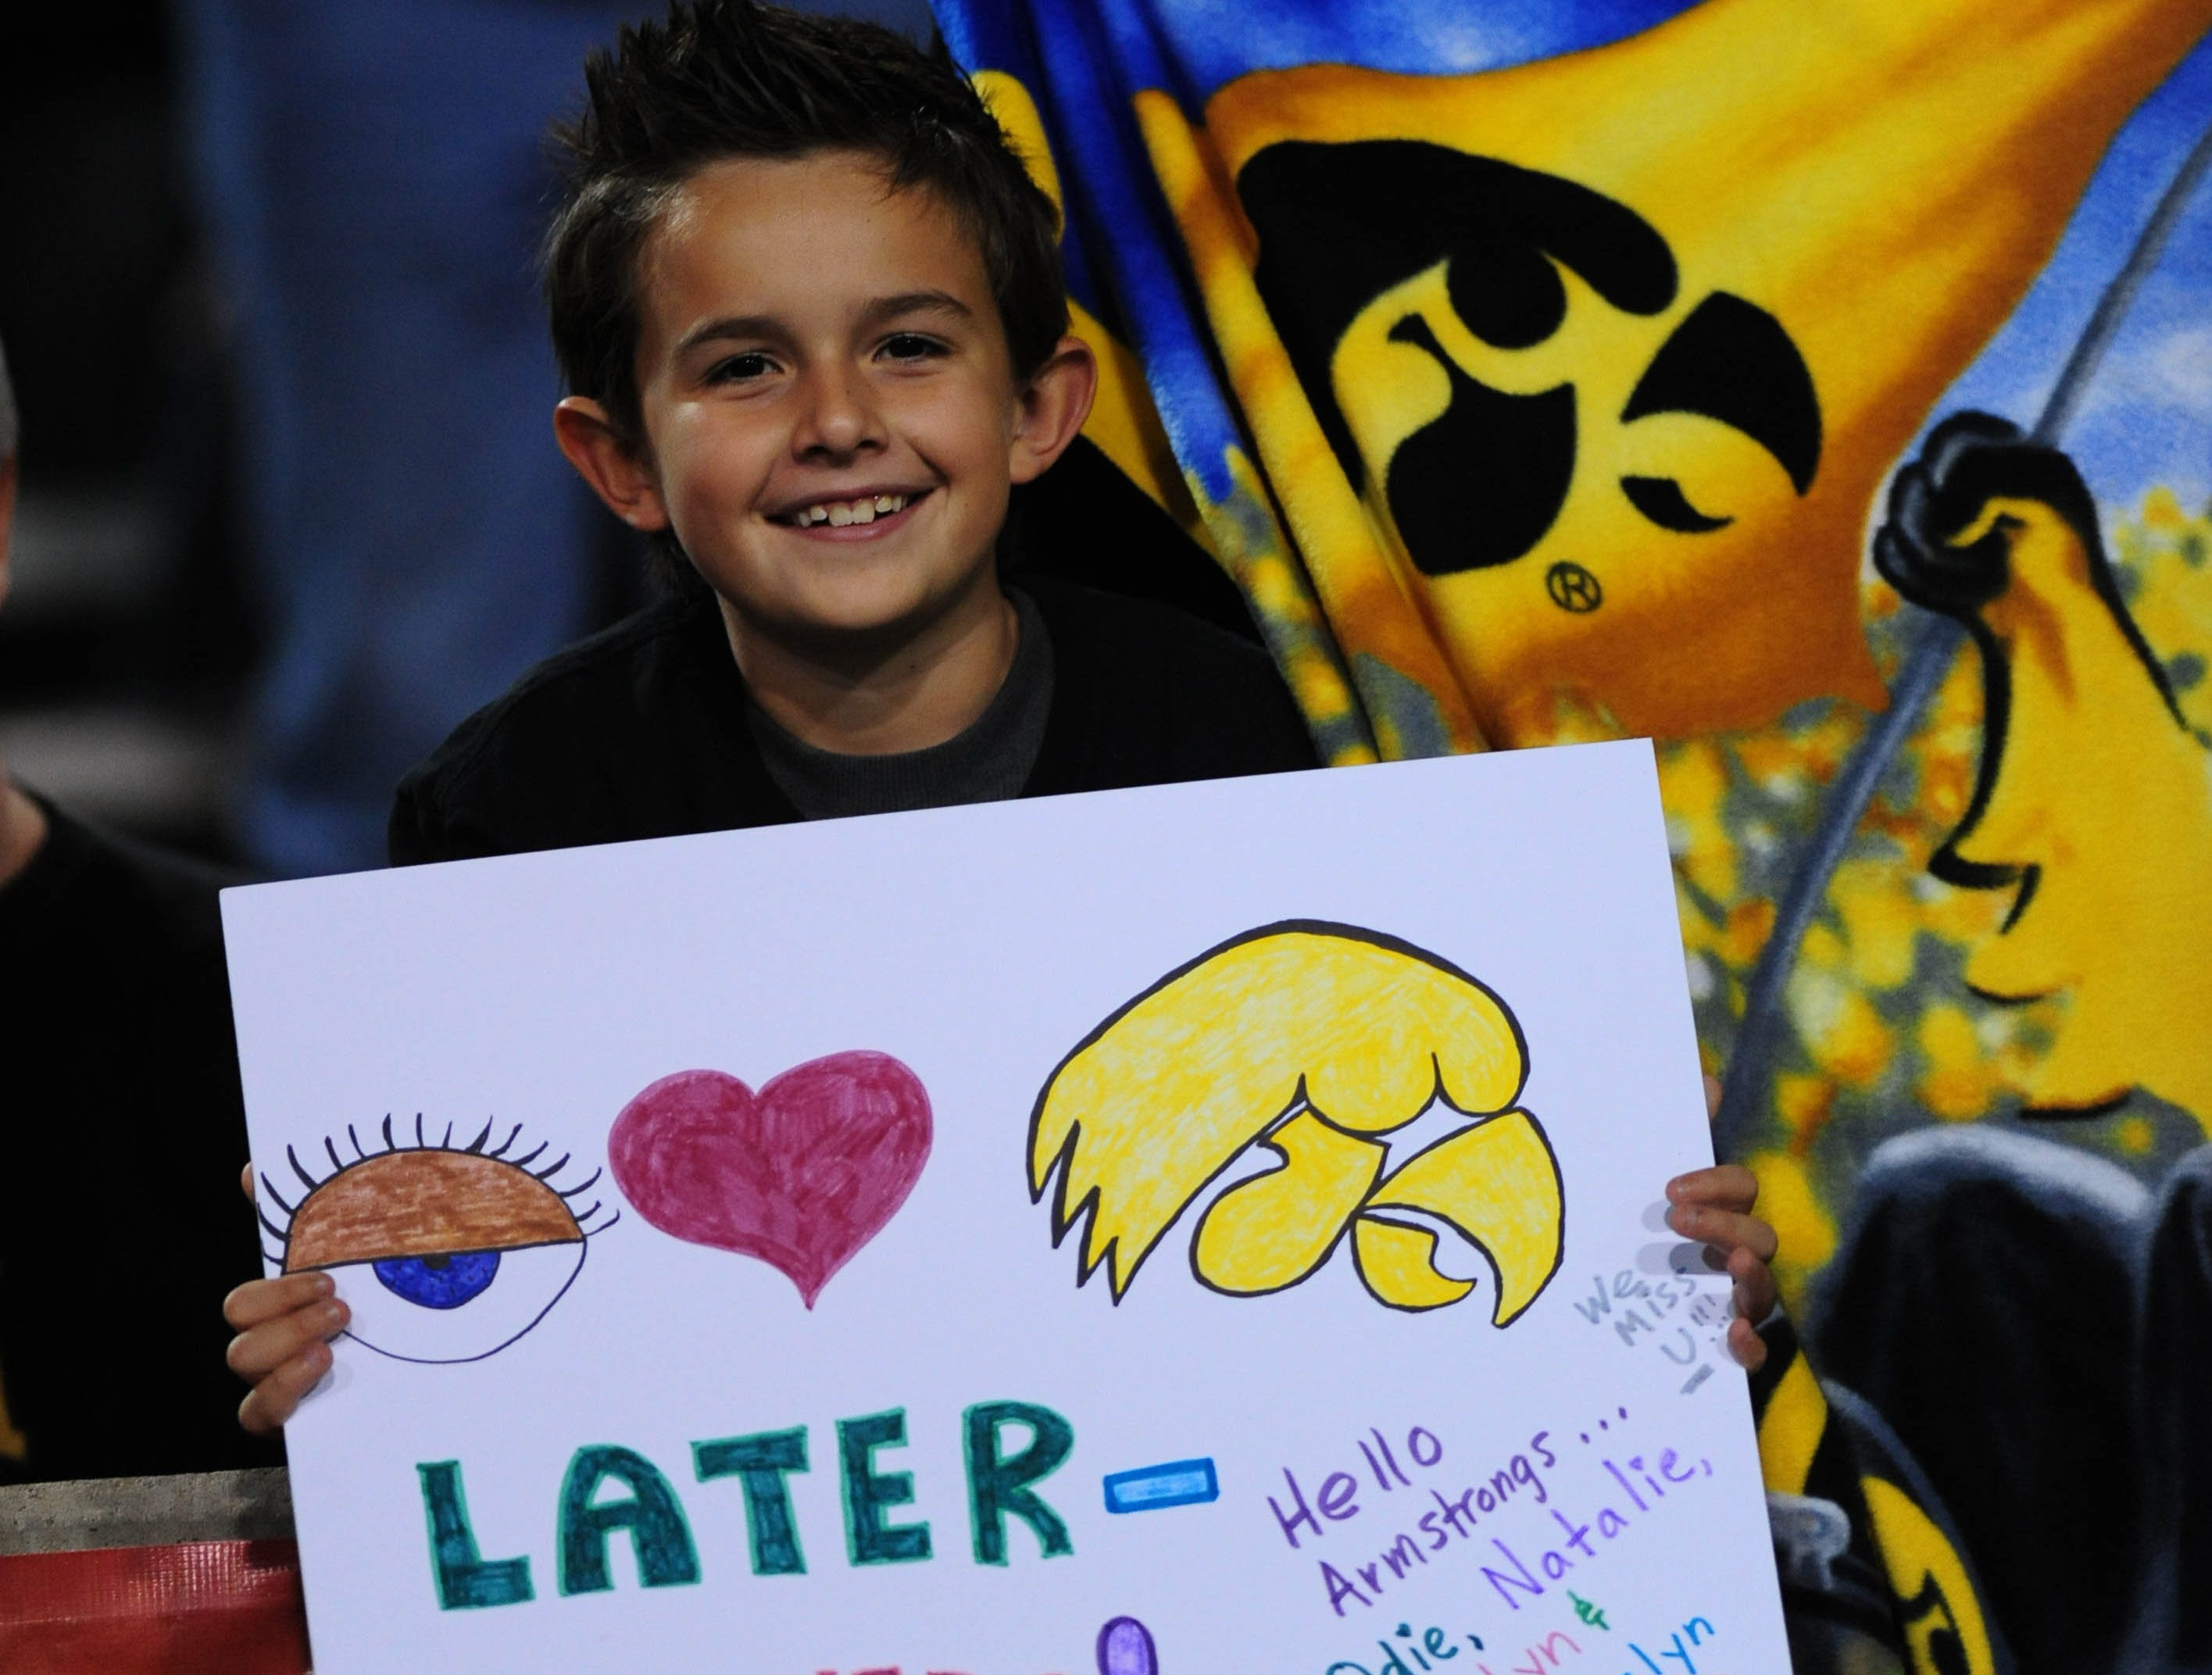 Dec 30, 2011; Tempe, AZ, USA;  A young Iowa Hawkeyes fan holds a sign during the first quarter against Oklahoma Sooners during the 2011 Insight Bowl at the Sun Devil Stadium. Mandatory Credit: Jennifer Hilderbrand-USA TODAY Sports